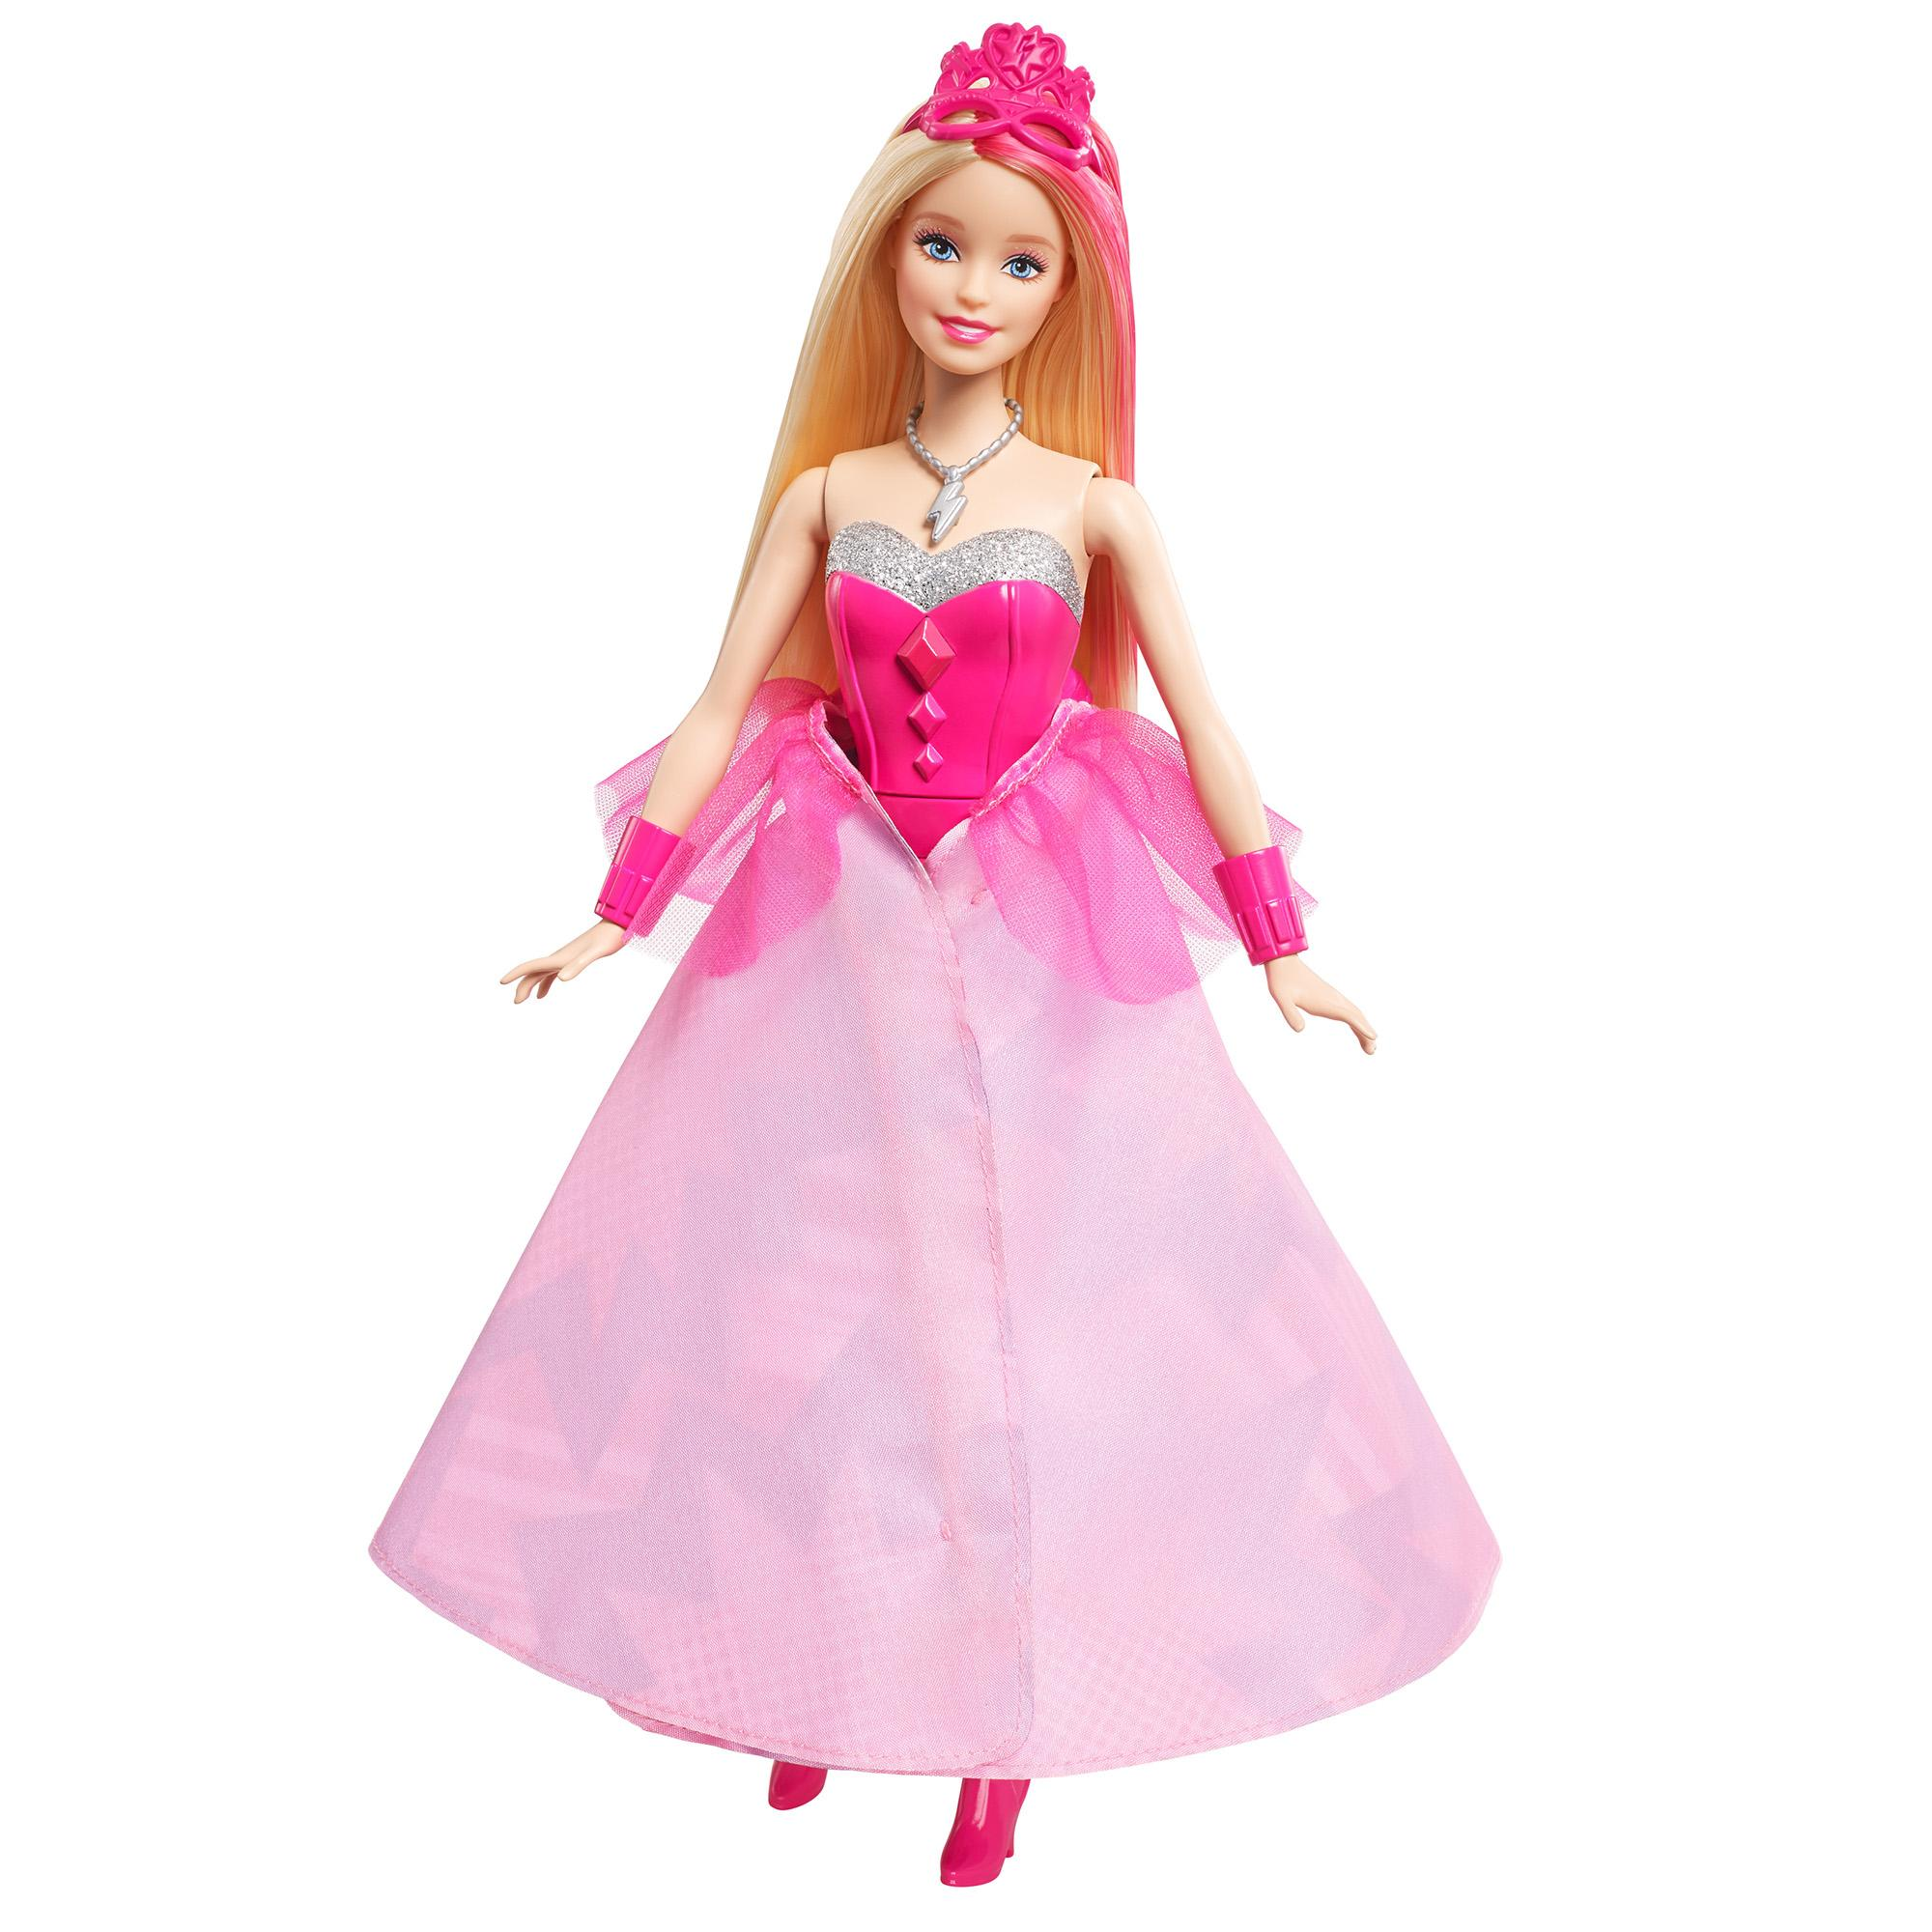 Pink Barbie Doll 451.5 Kb